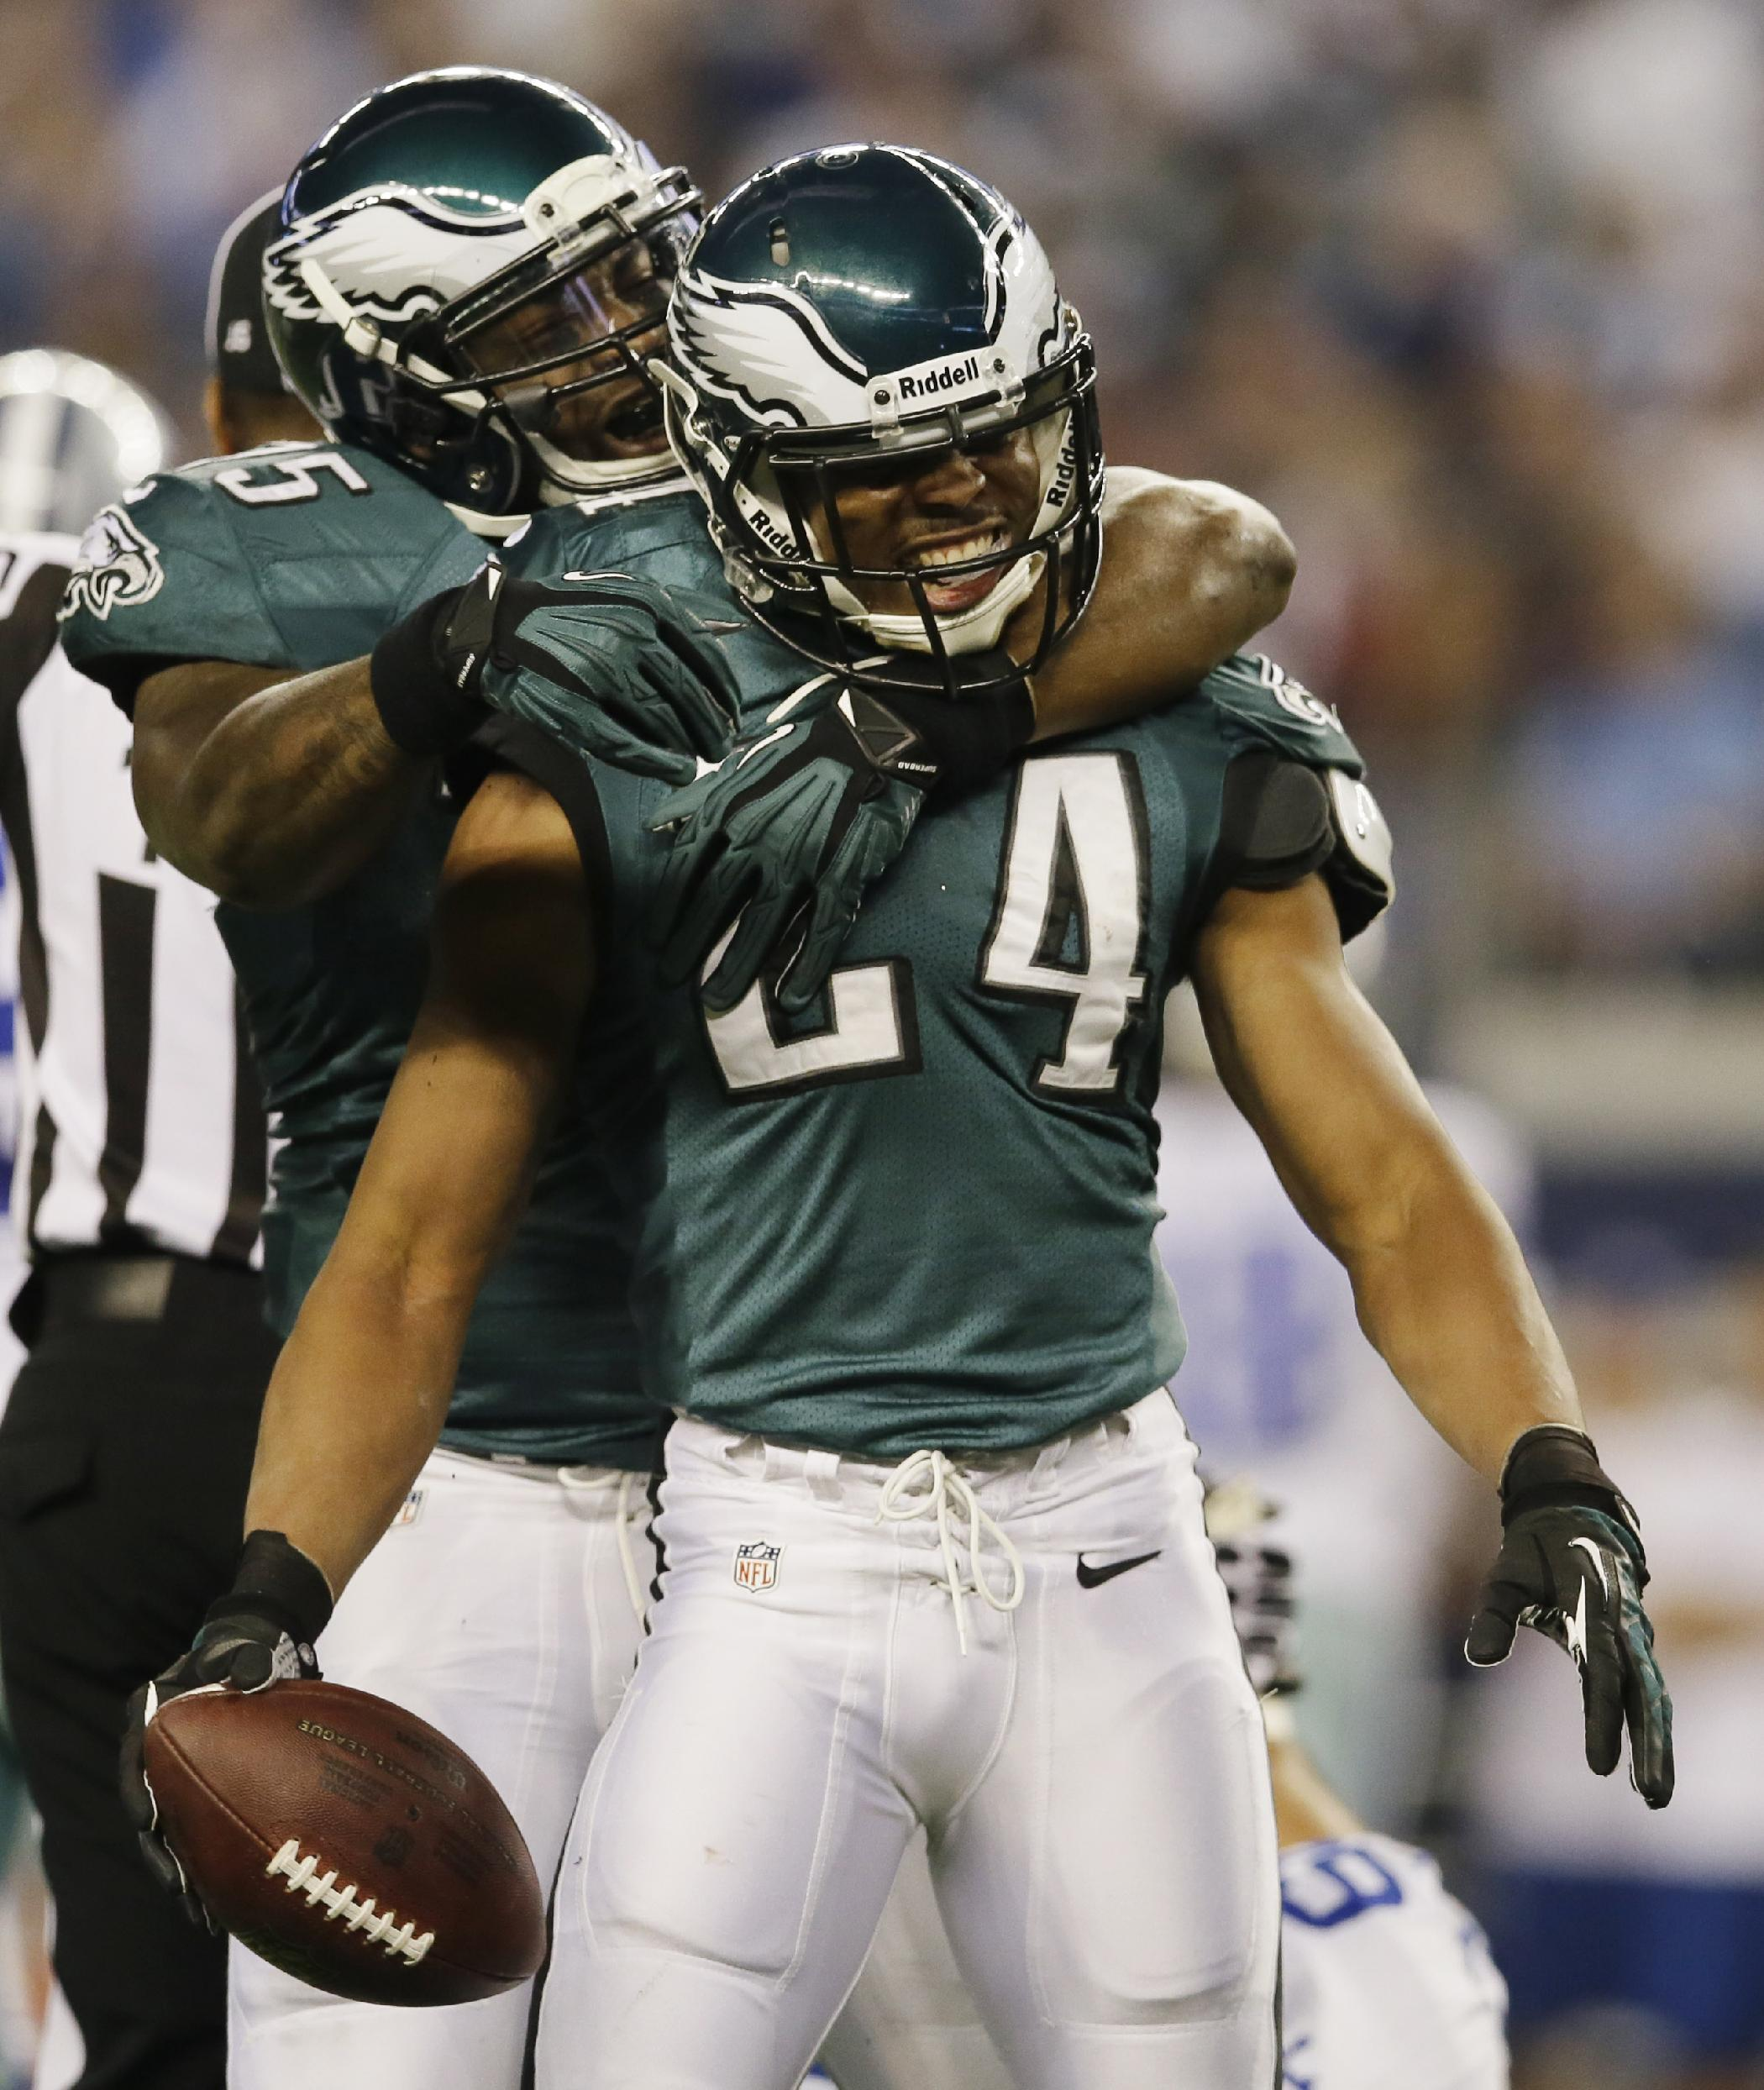 After recovering a fumble by Dallas Cowboys running back DeMarco Murray, Philadelphia Eagles cornerback Bradley Fletcher (24) celebrates with defensive end Vinny Curry during the first half of an NFL football game, Sunday, Dec. 29, 2013, in Arlington, Texas